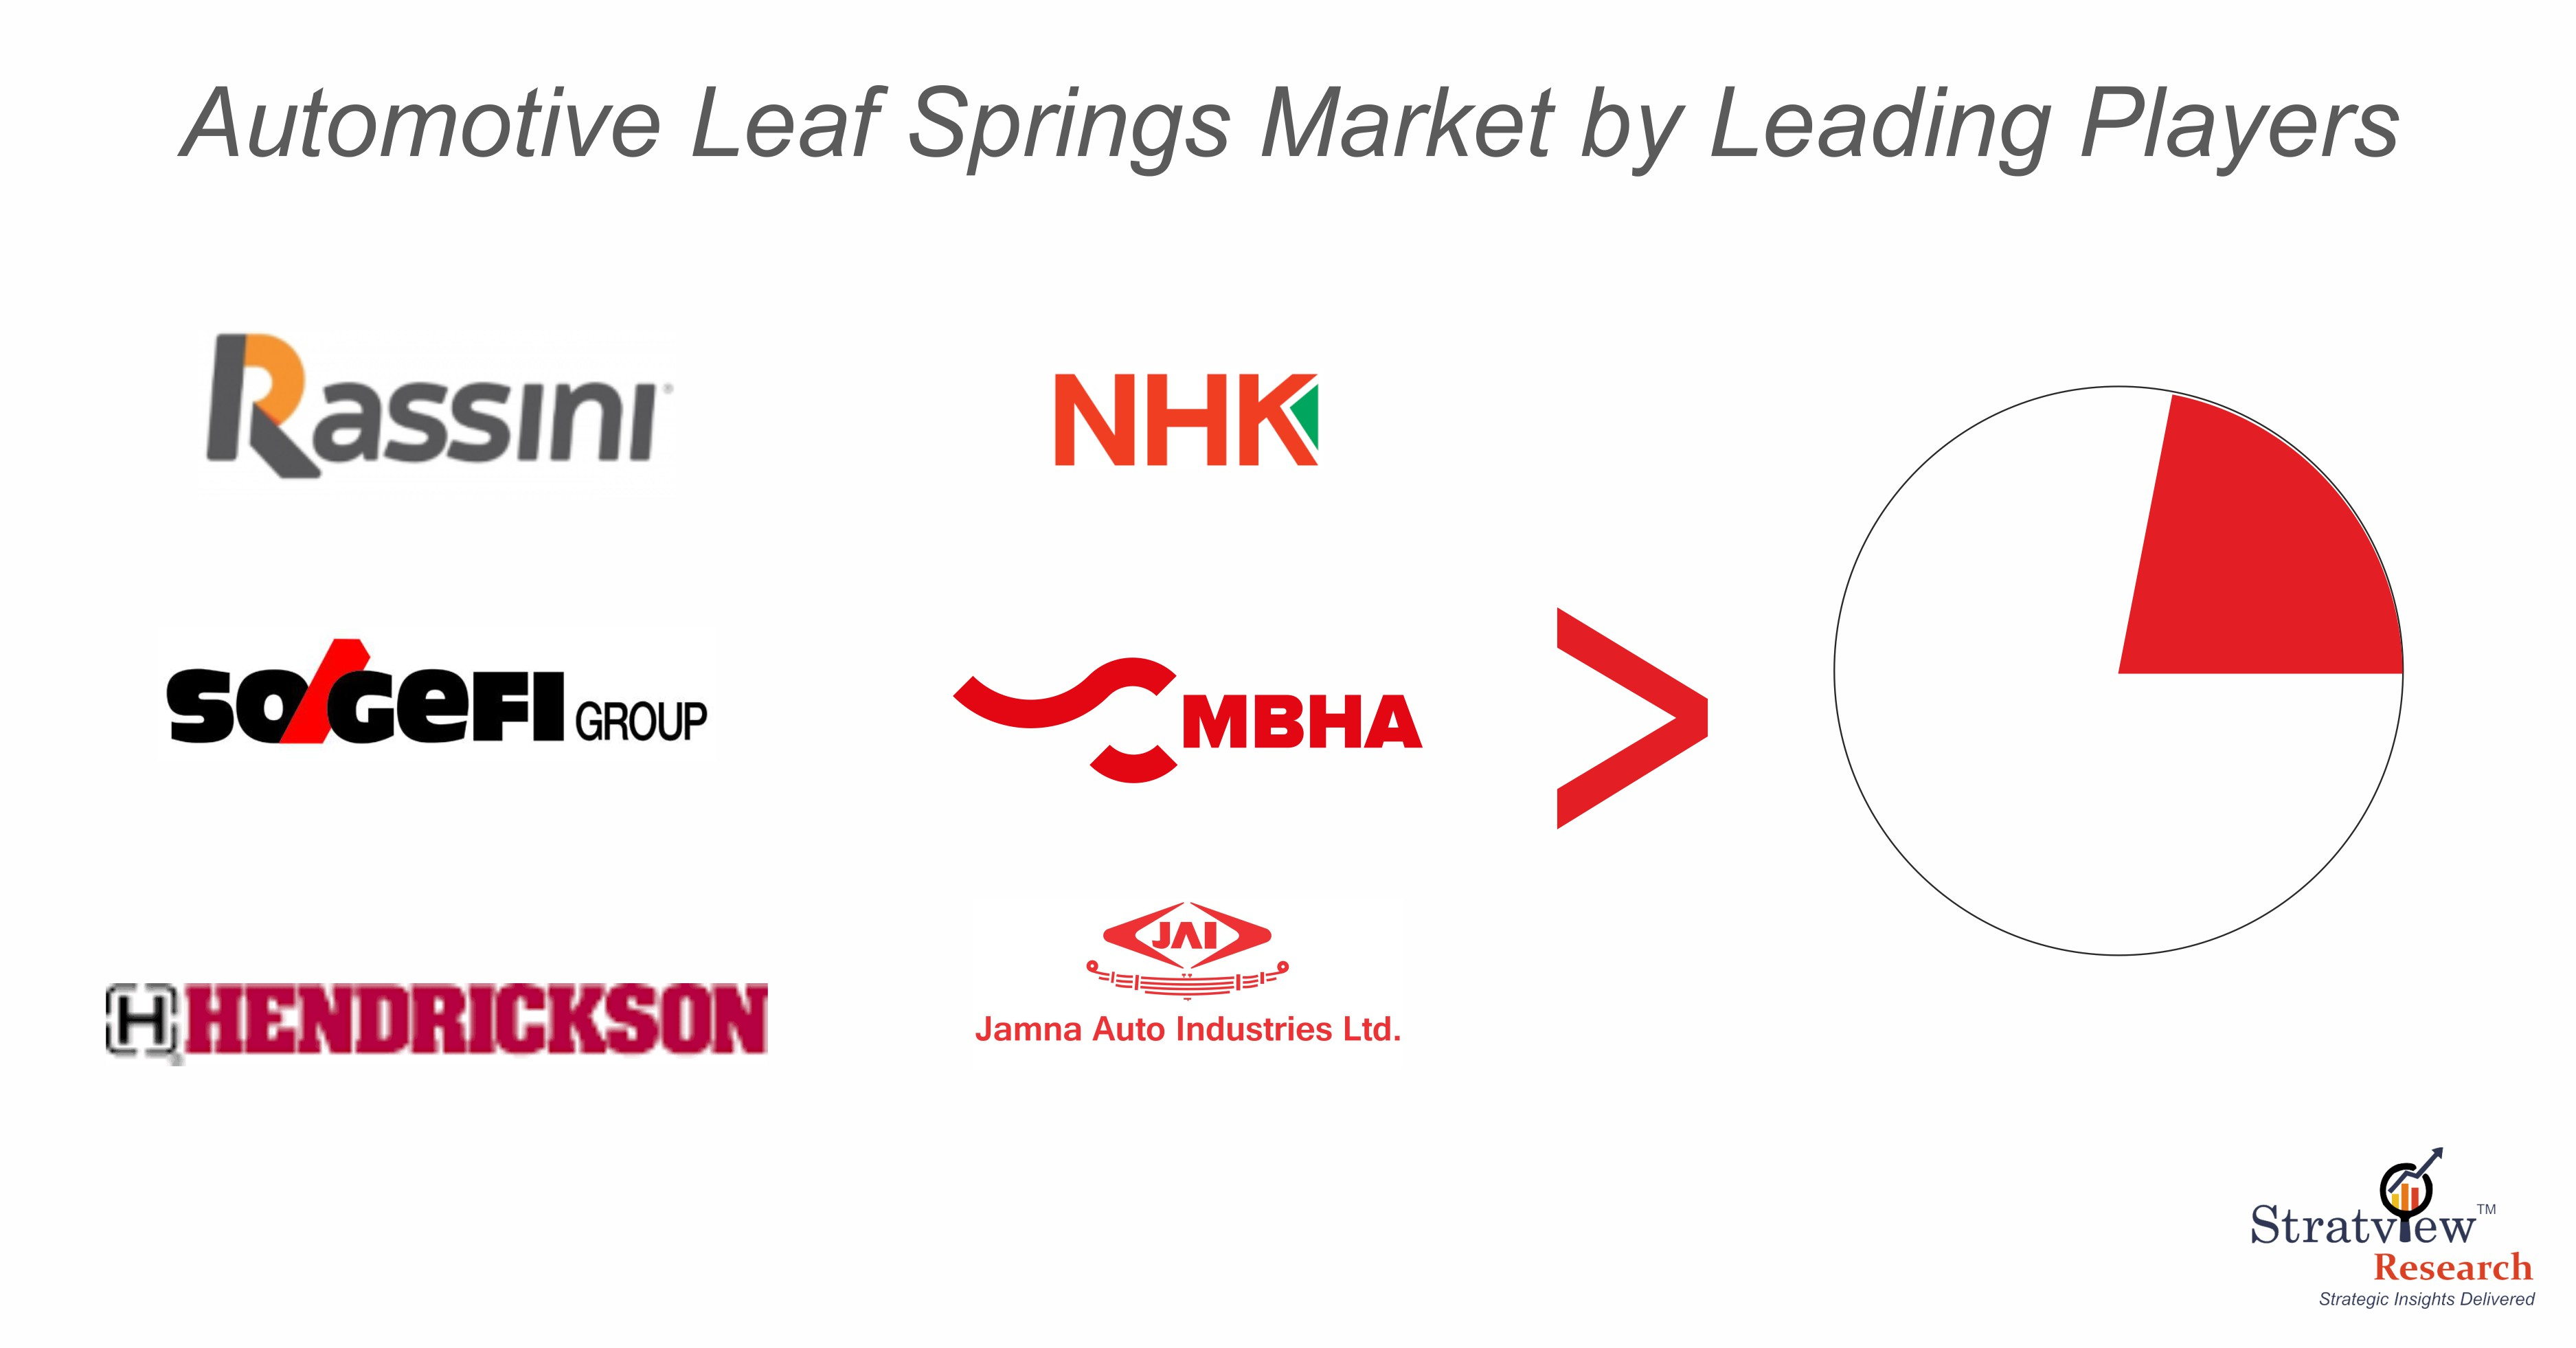 Automotive Leaf Spring Market Share Analysis.jpg